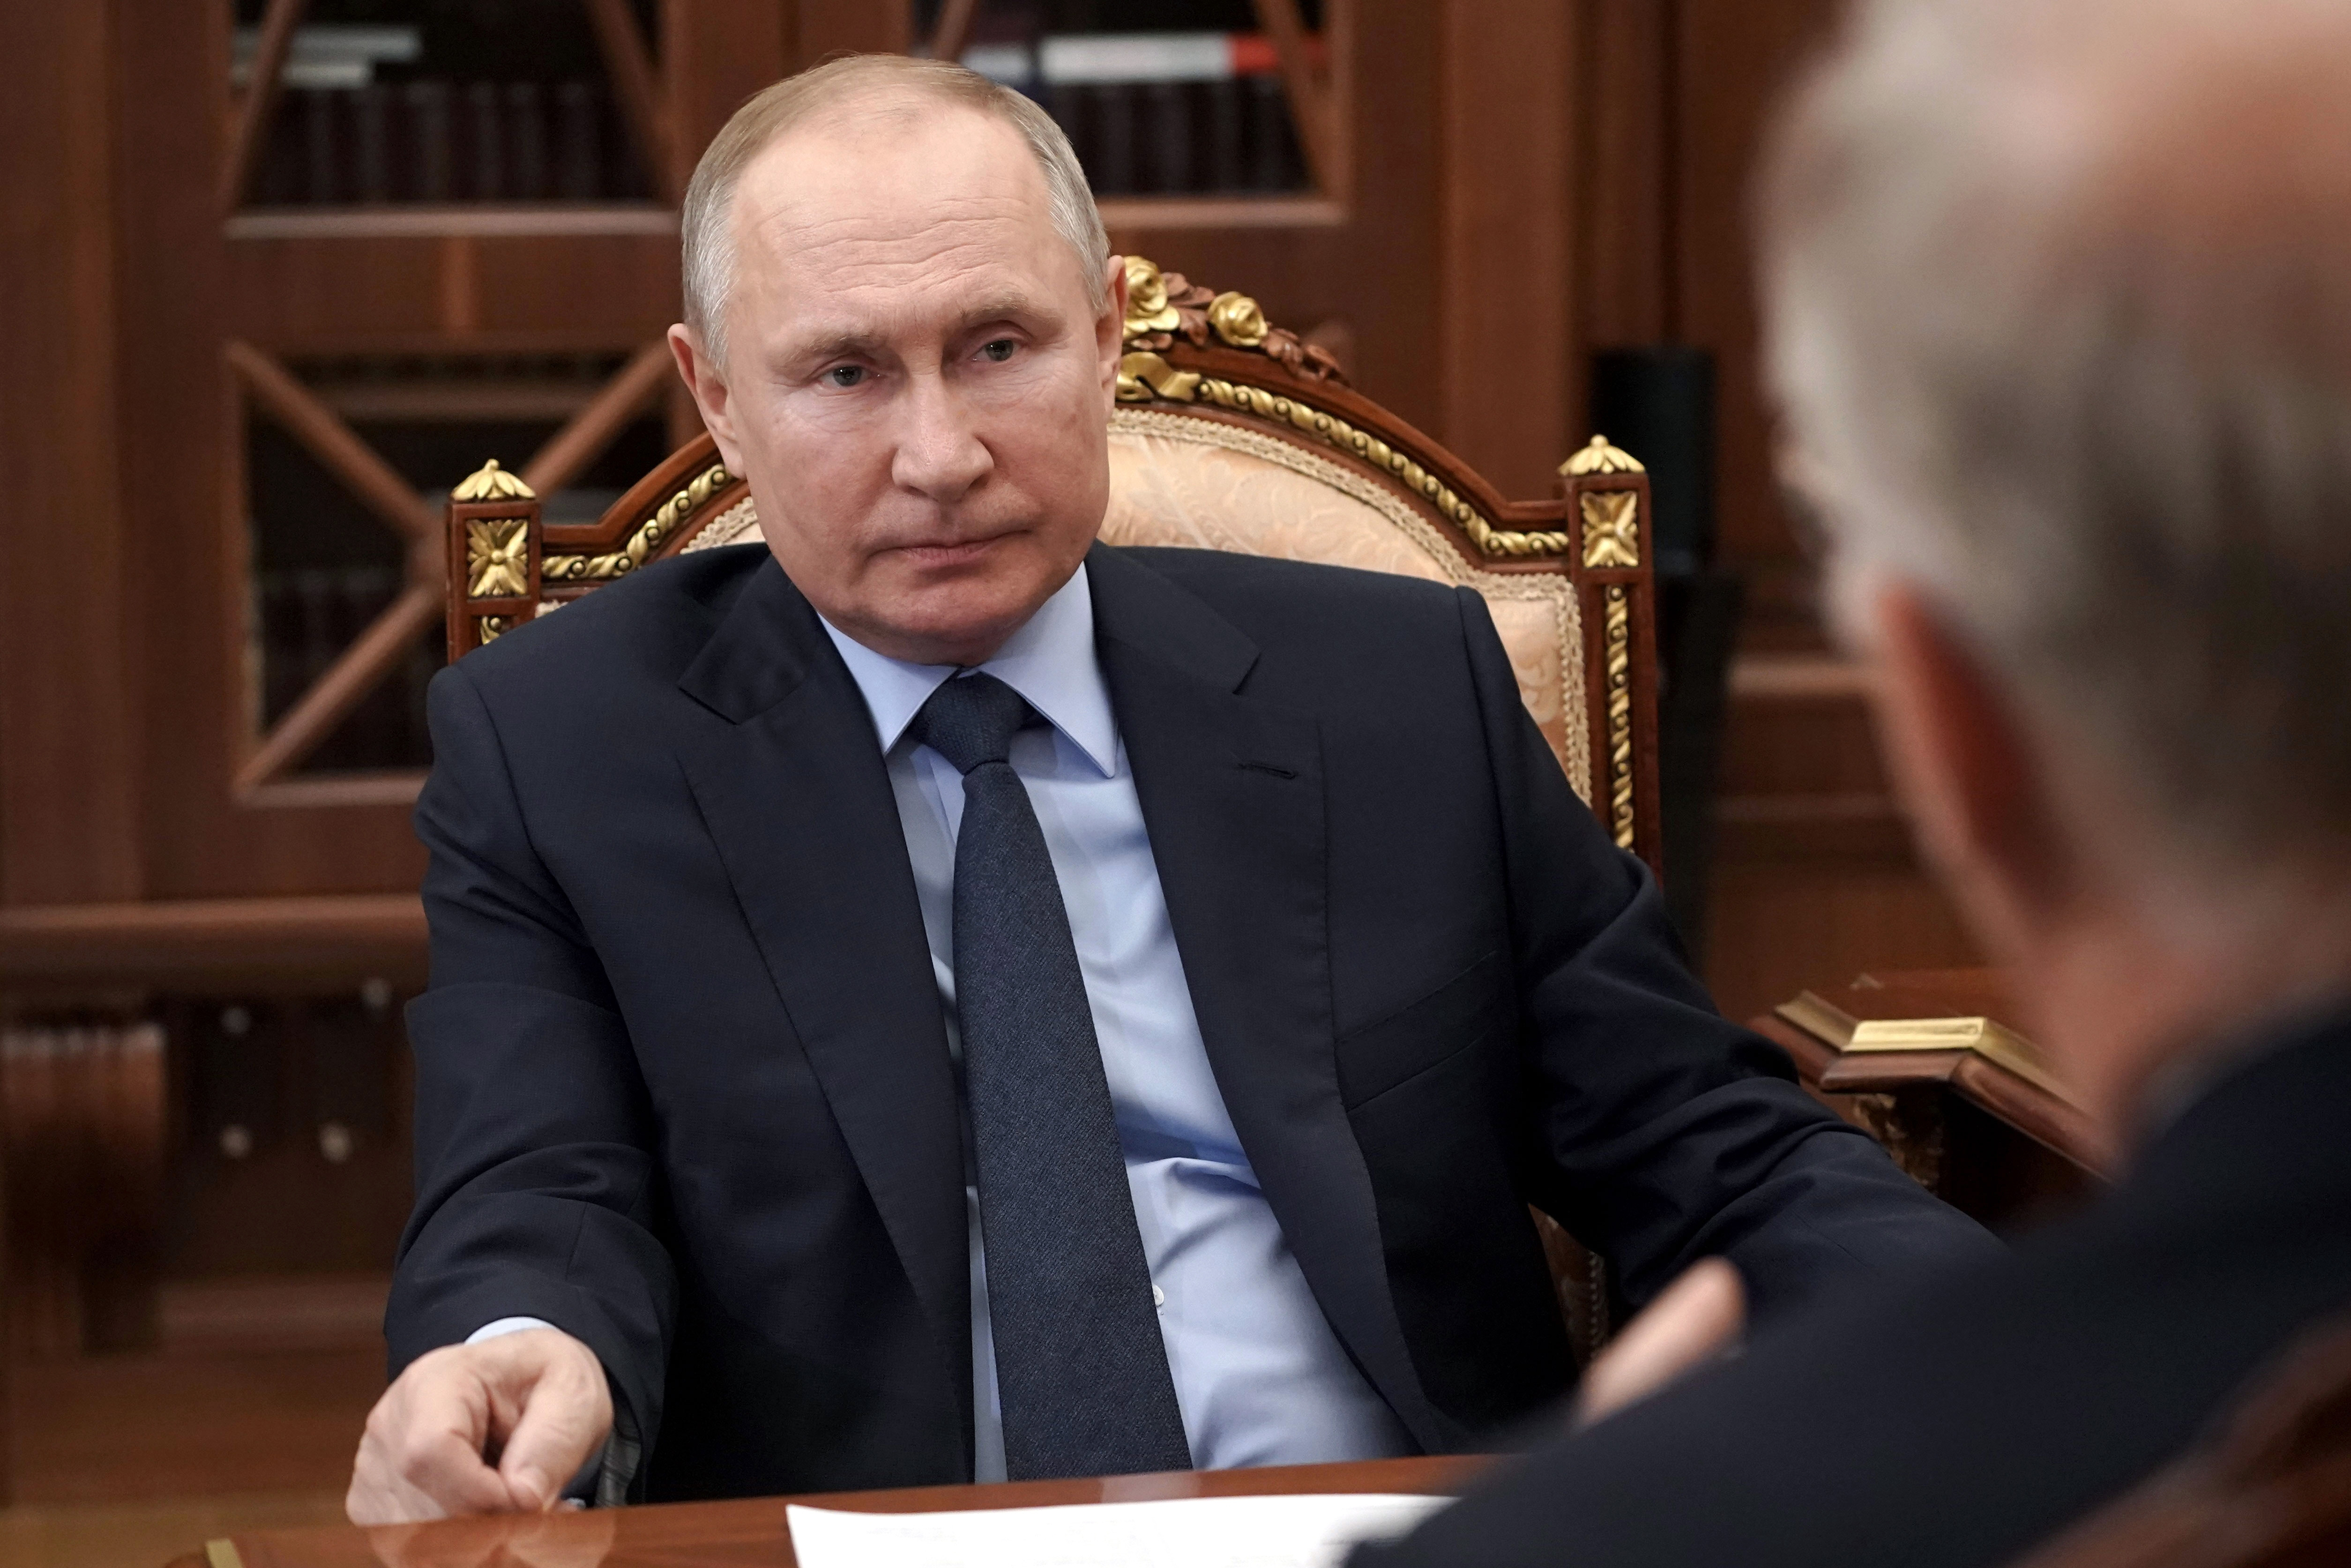 Russian President Vladimir Putin at the Kremlin in Moscow, Russia, Friday, April 2, 2021.